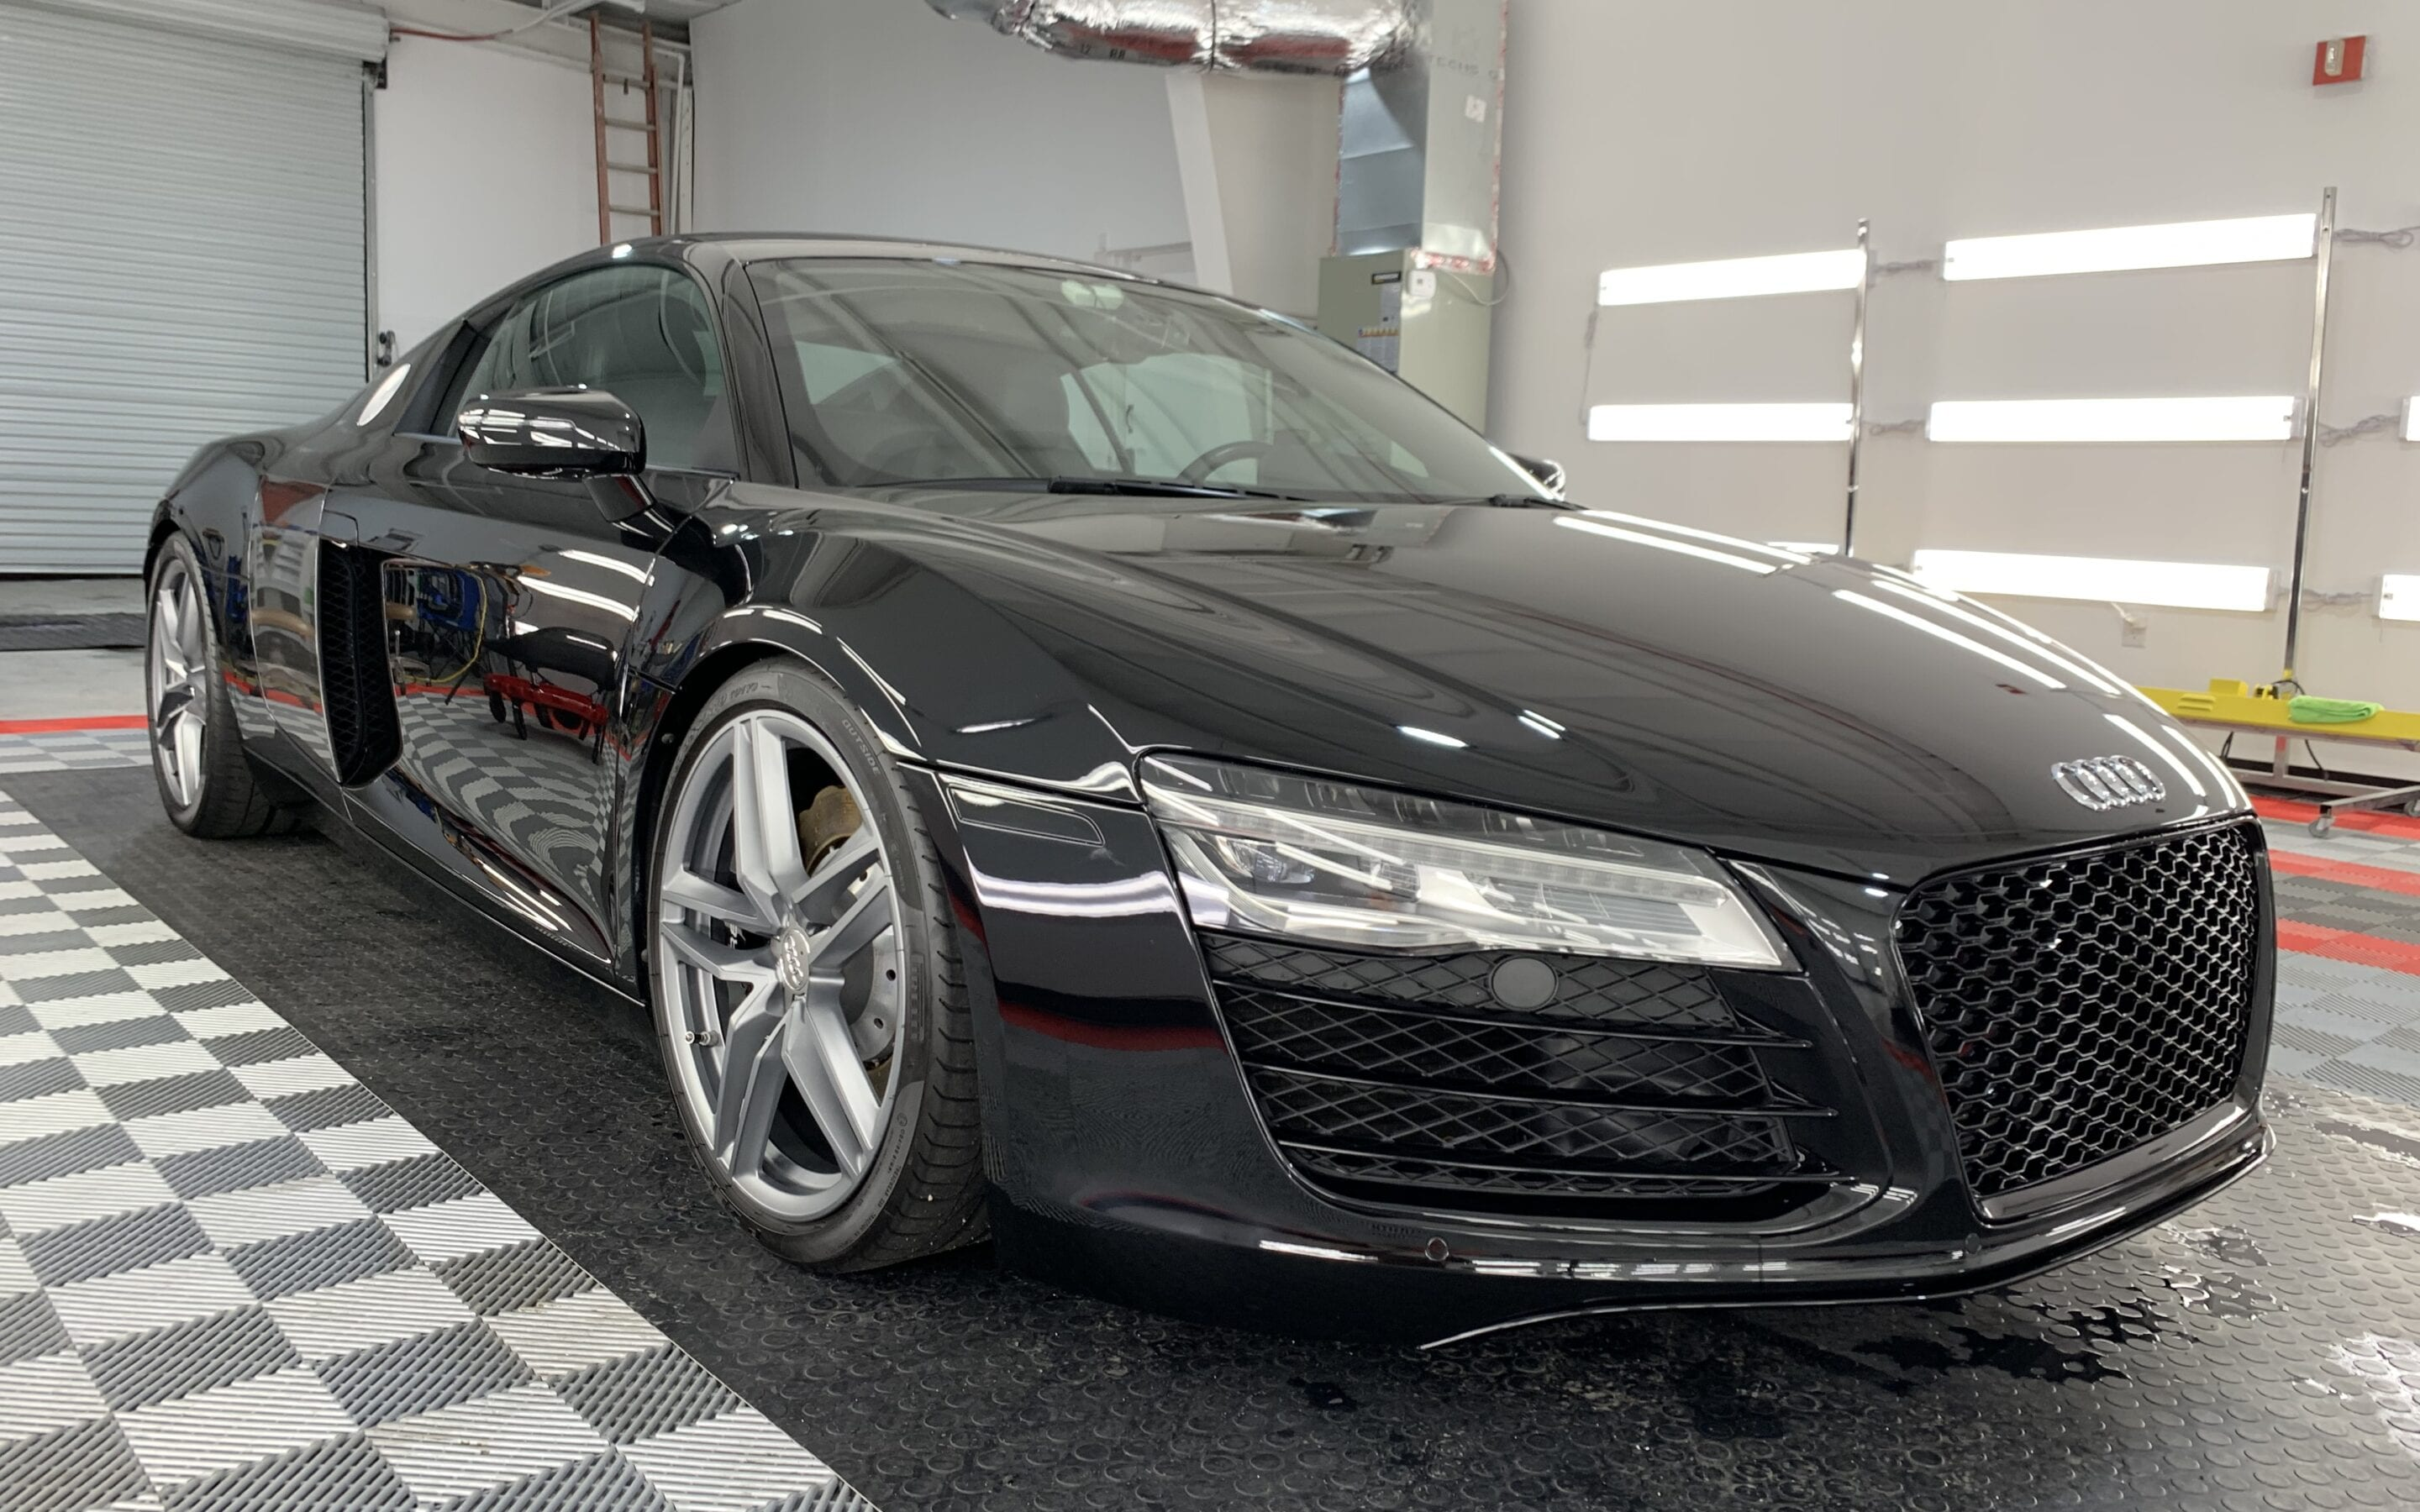 Ceramic Coating of a 2015 Audi R8